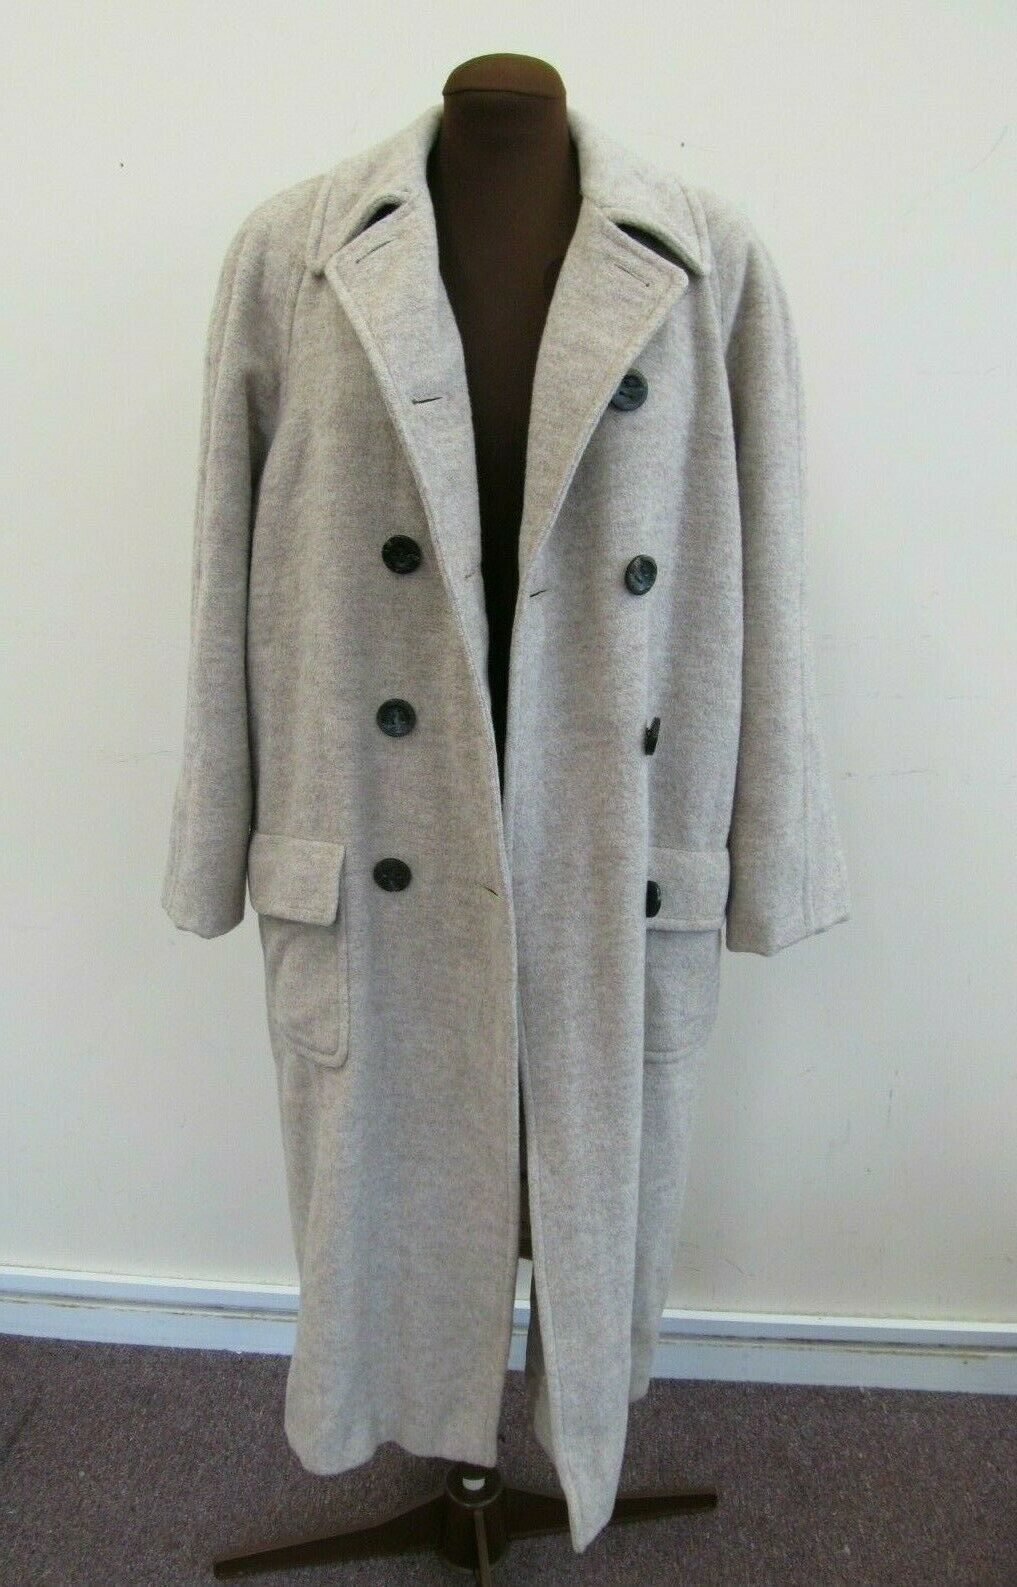 JAEGER LONDON Vintage Wool Double Breasted Long Coat 44  Chest Labeled as Small